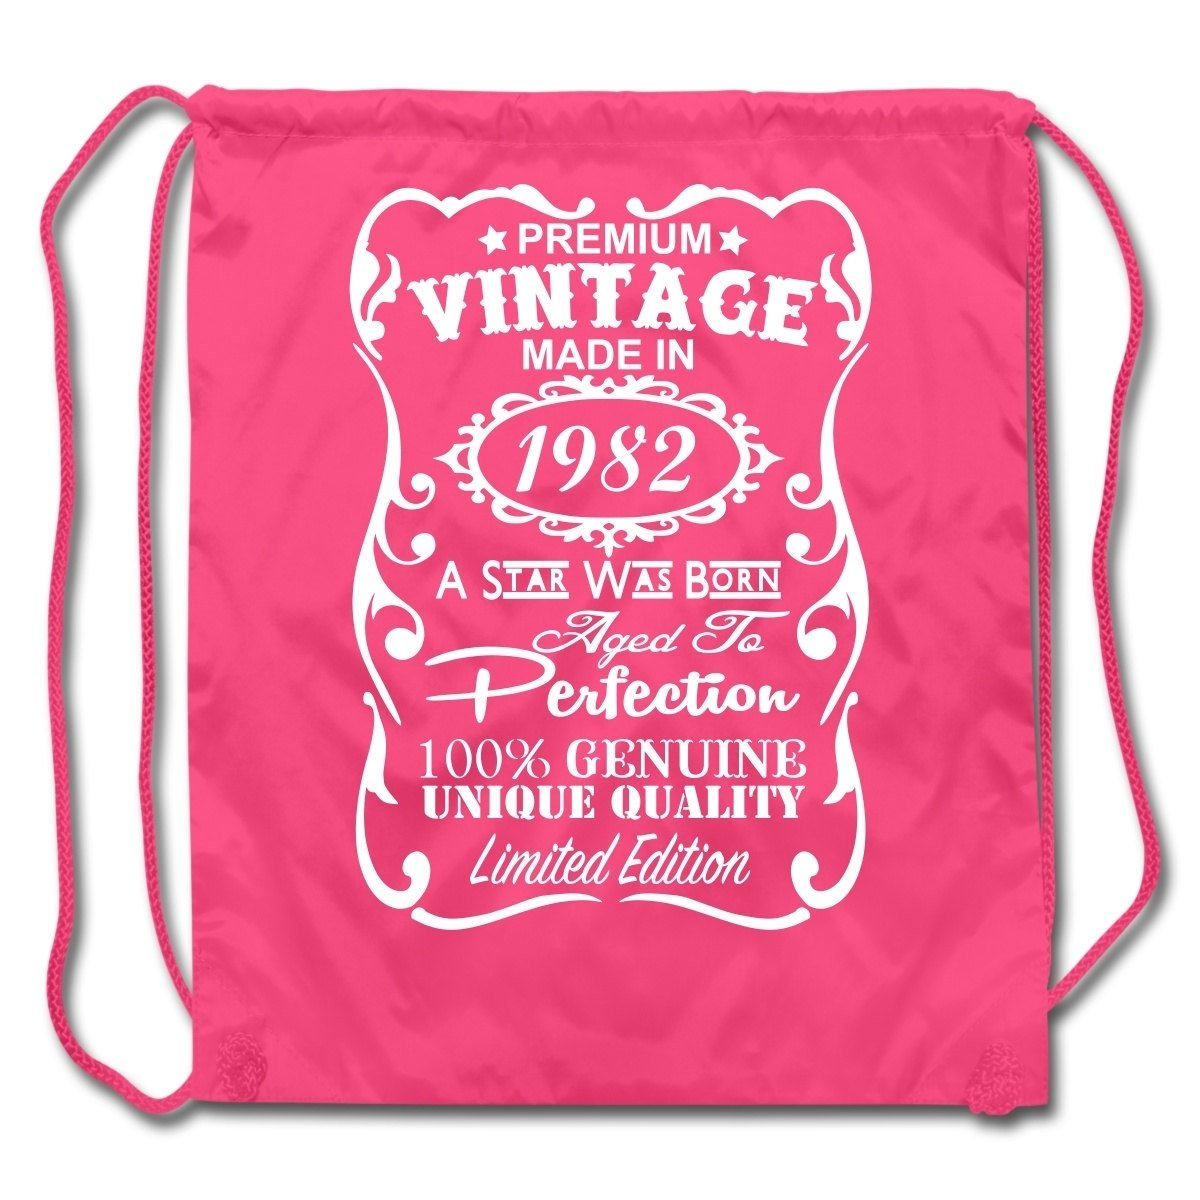 10 Unique 35Th Birthday Gift Ideas For Her 35th birthday gift ideas unique drawstring backpack made in 1982 2020